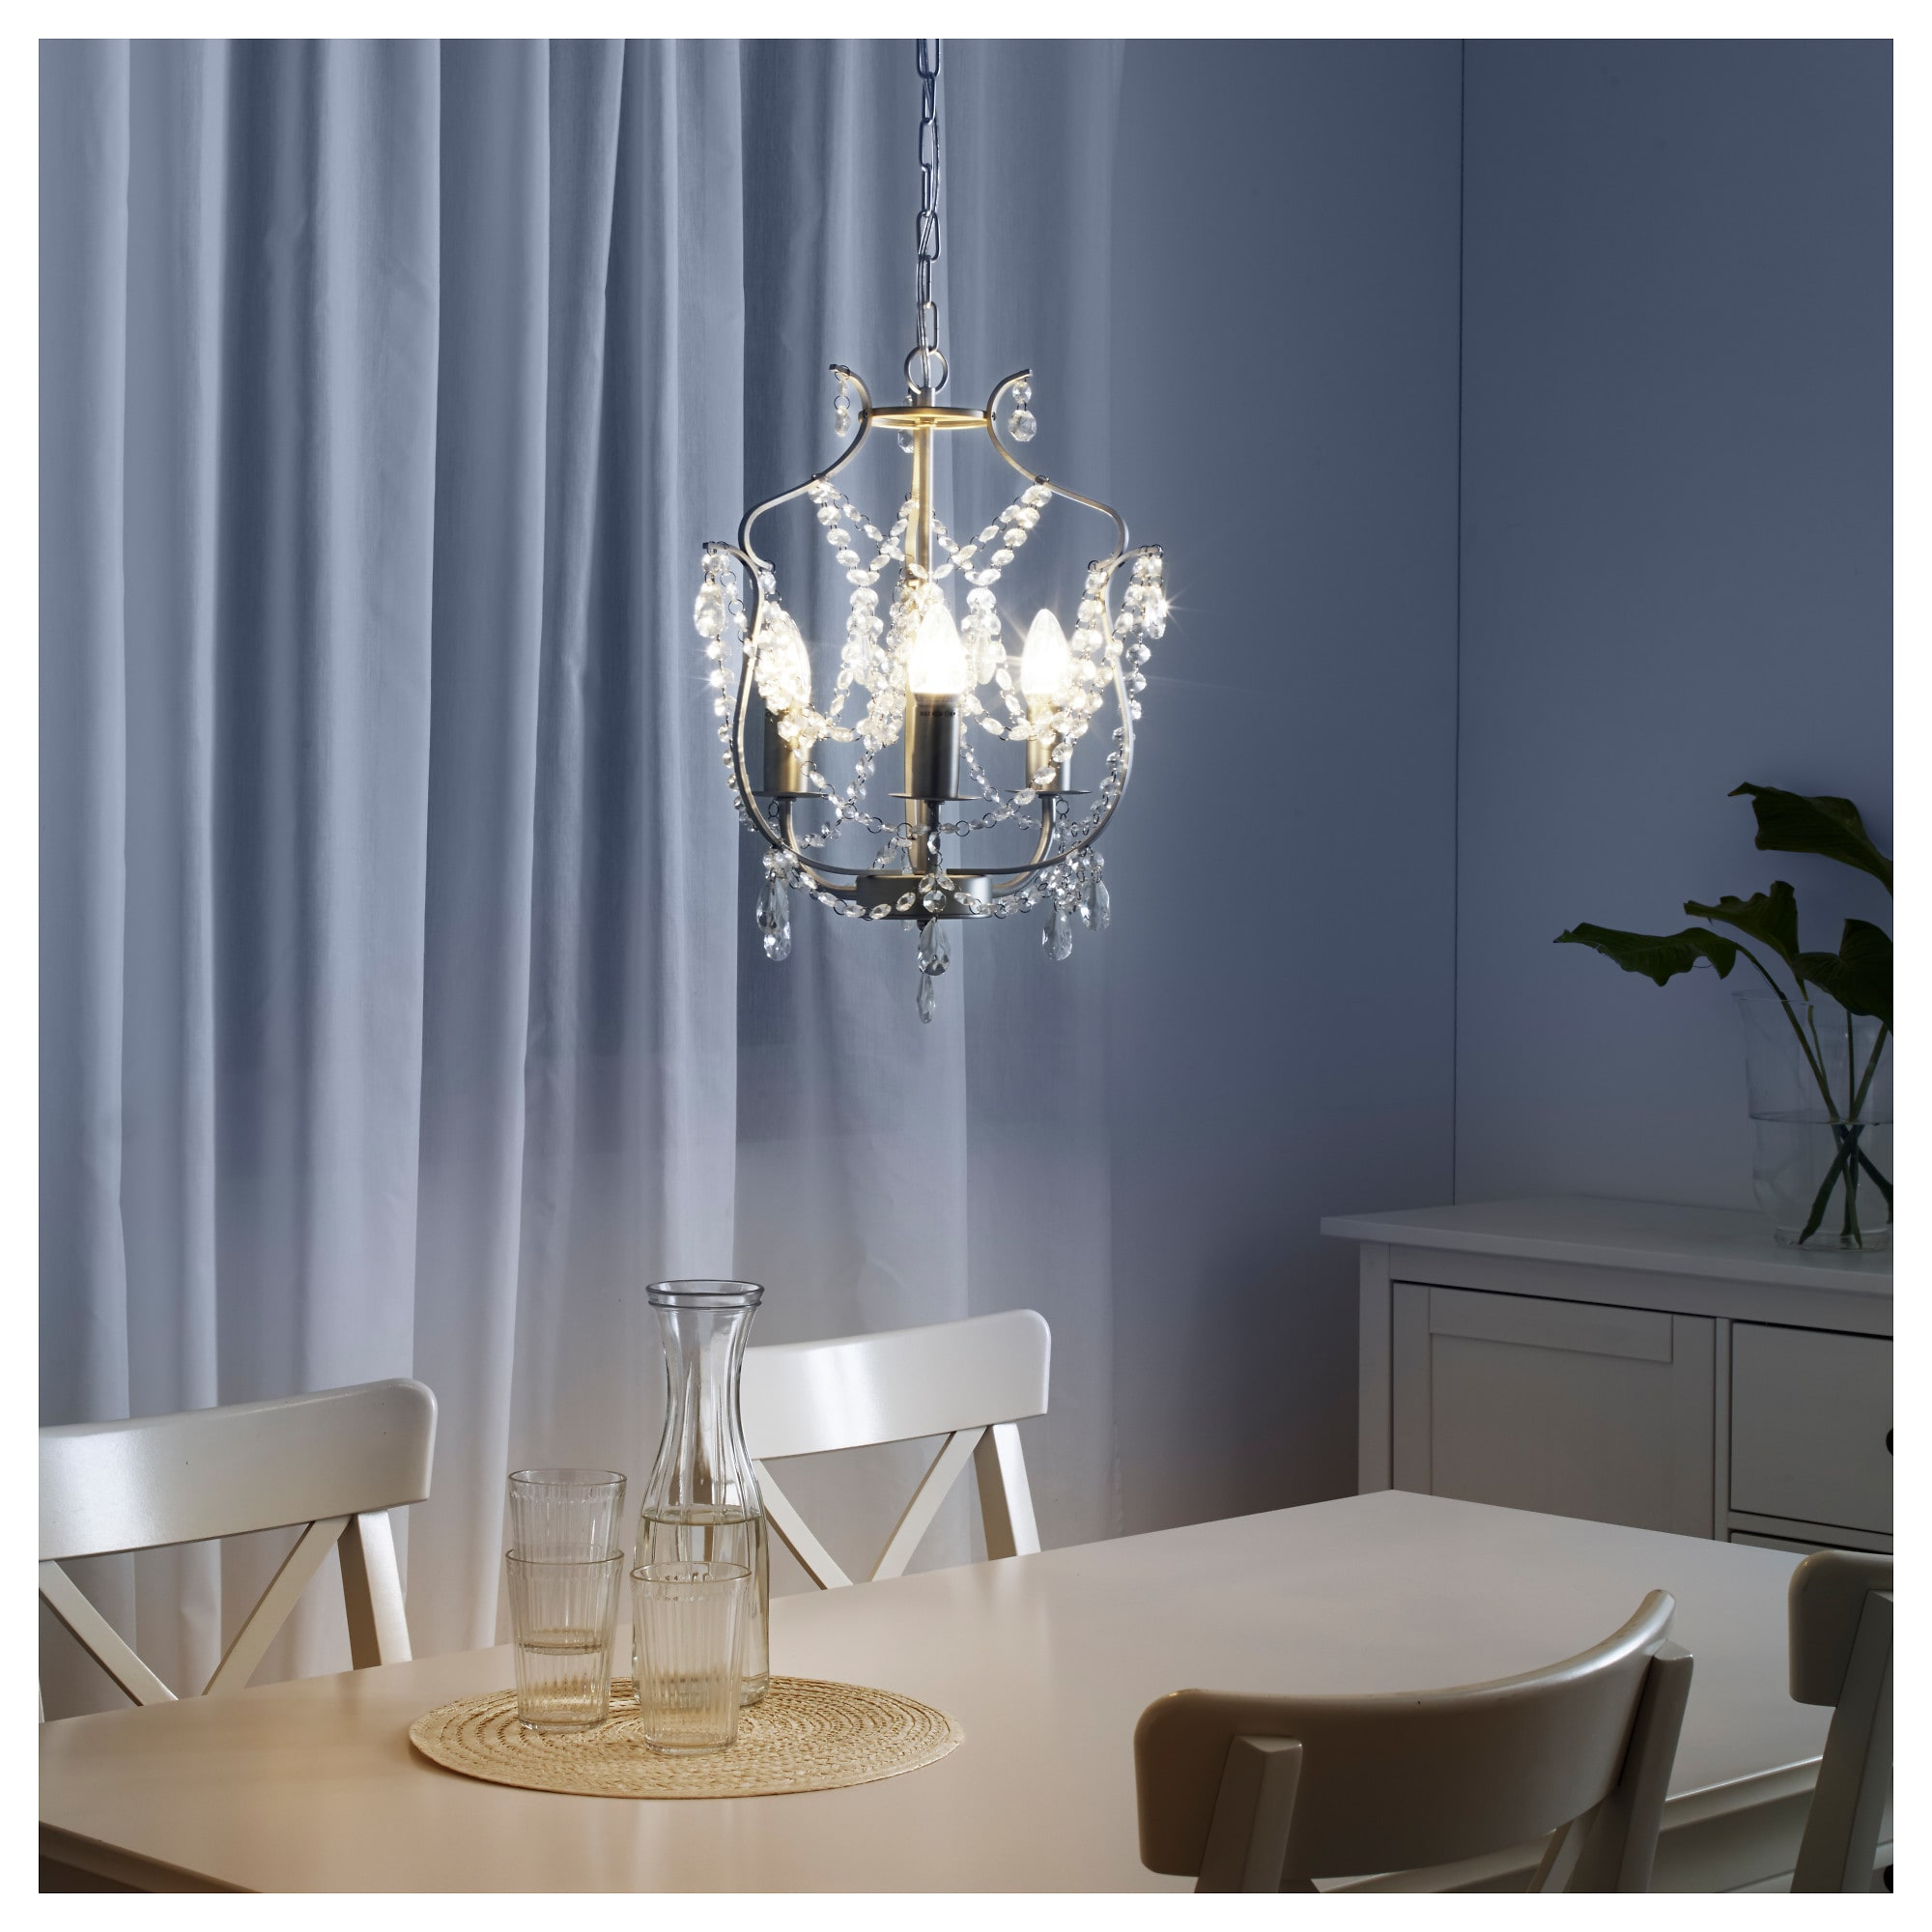 IKEA KRISTALLER Chandelier, 3 armed silver color, glass